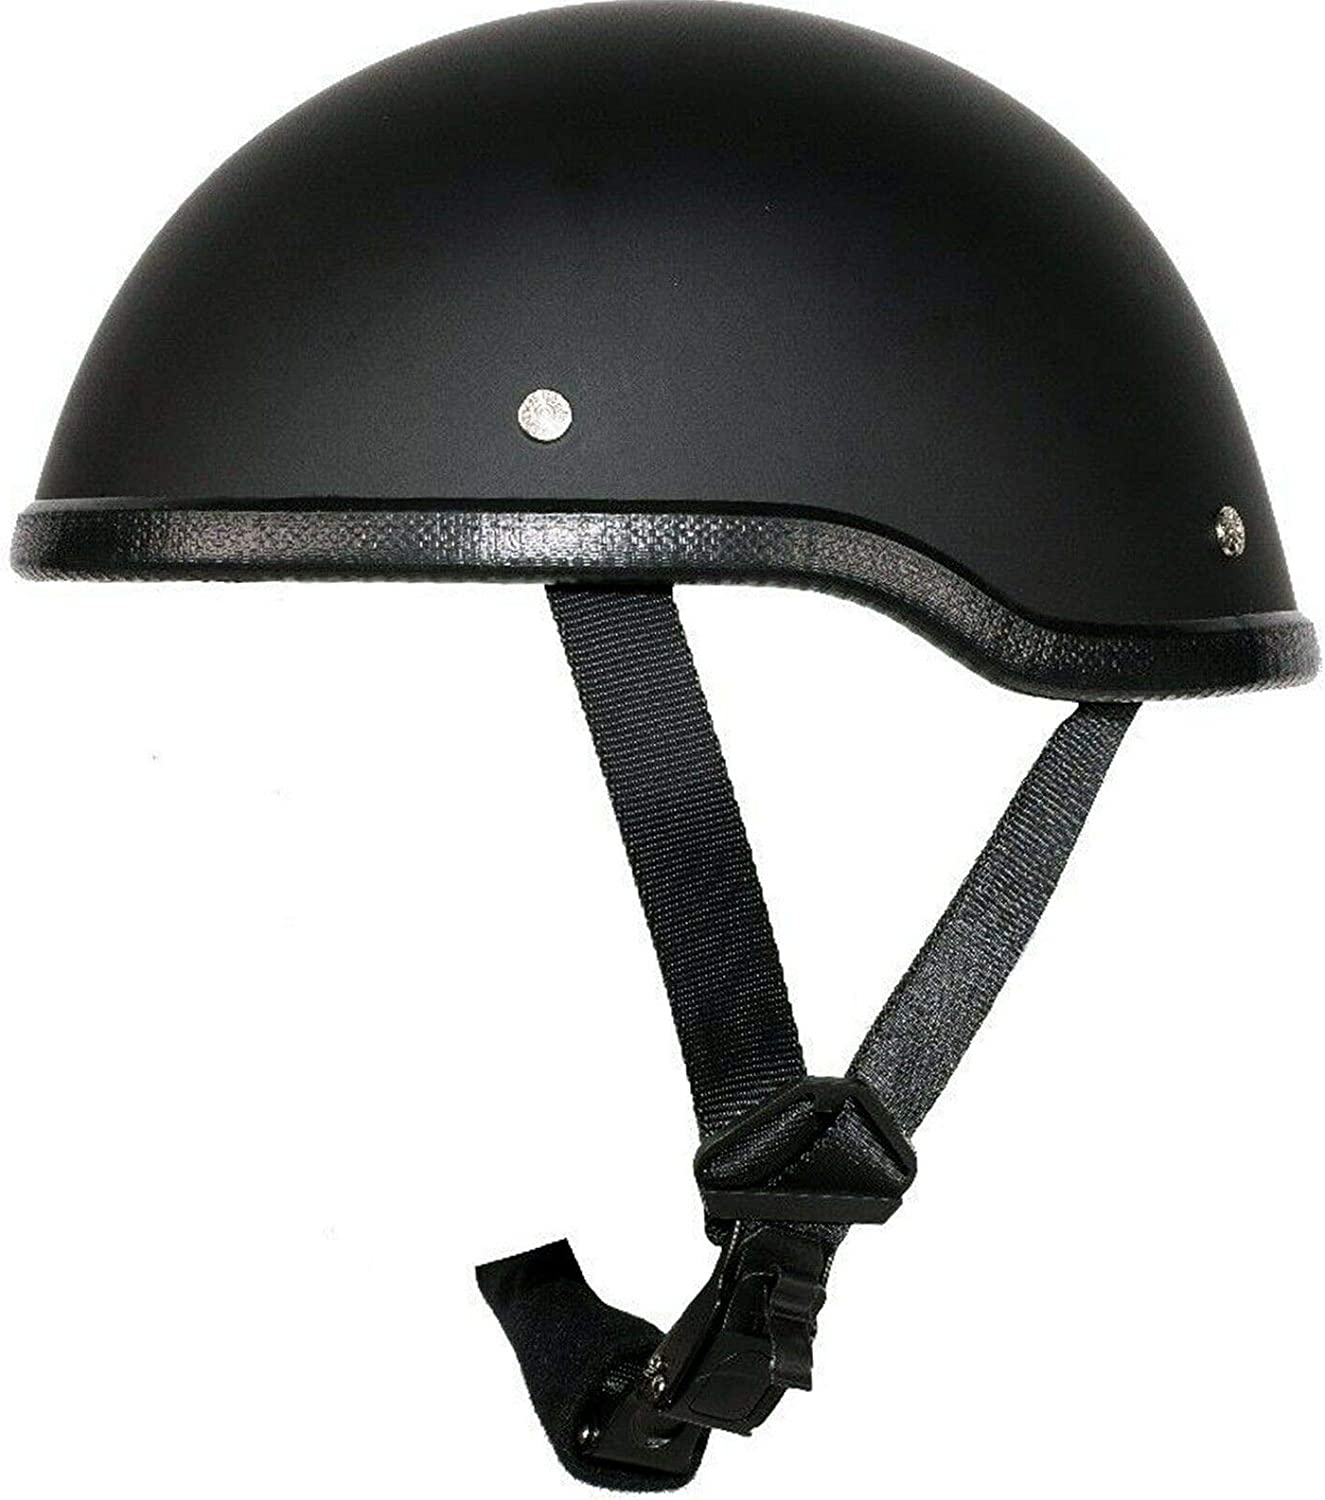 EXCELSIOR INT Eagle low-pricing Classic Flat Scooter Chopper Skull Cap Helme